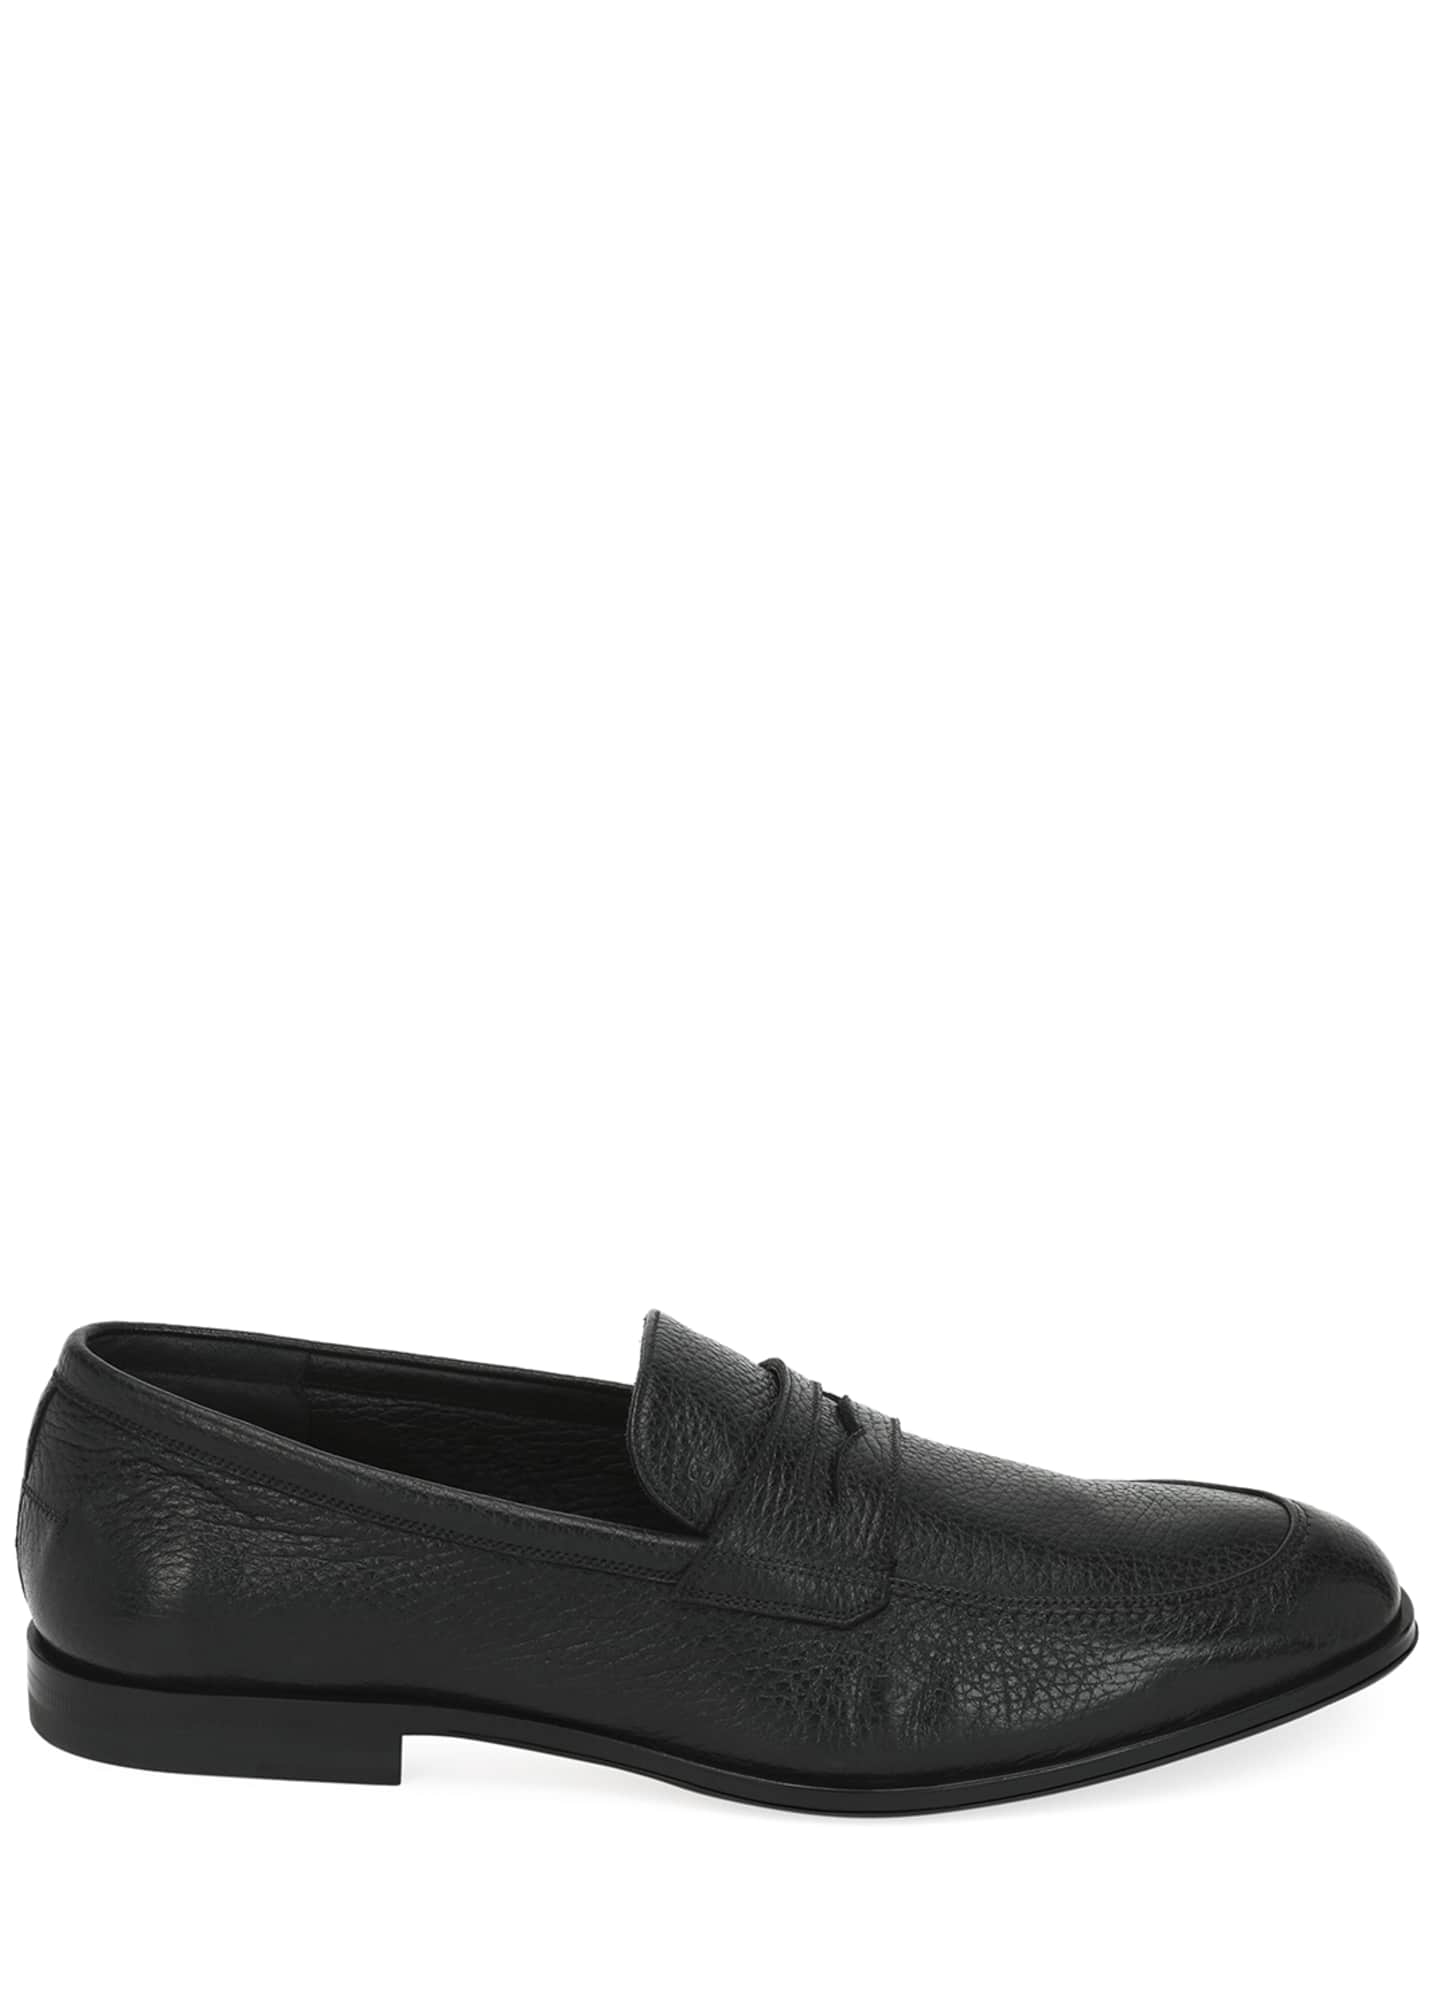 Image 2 of 3: Webb Leather Penny Loafer